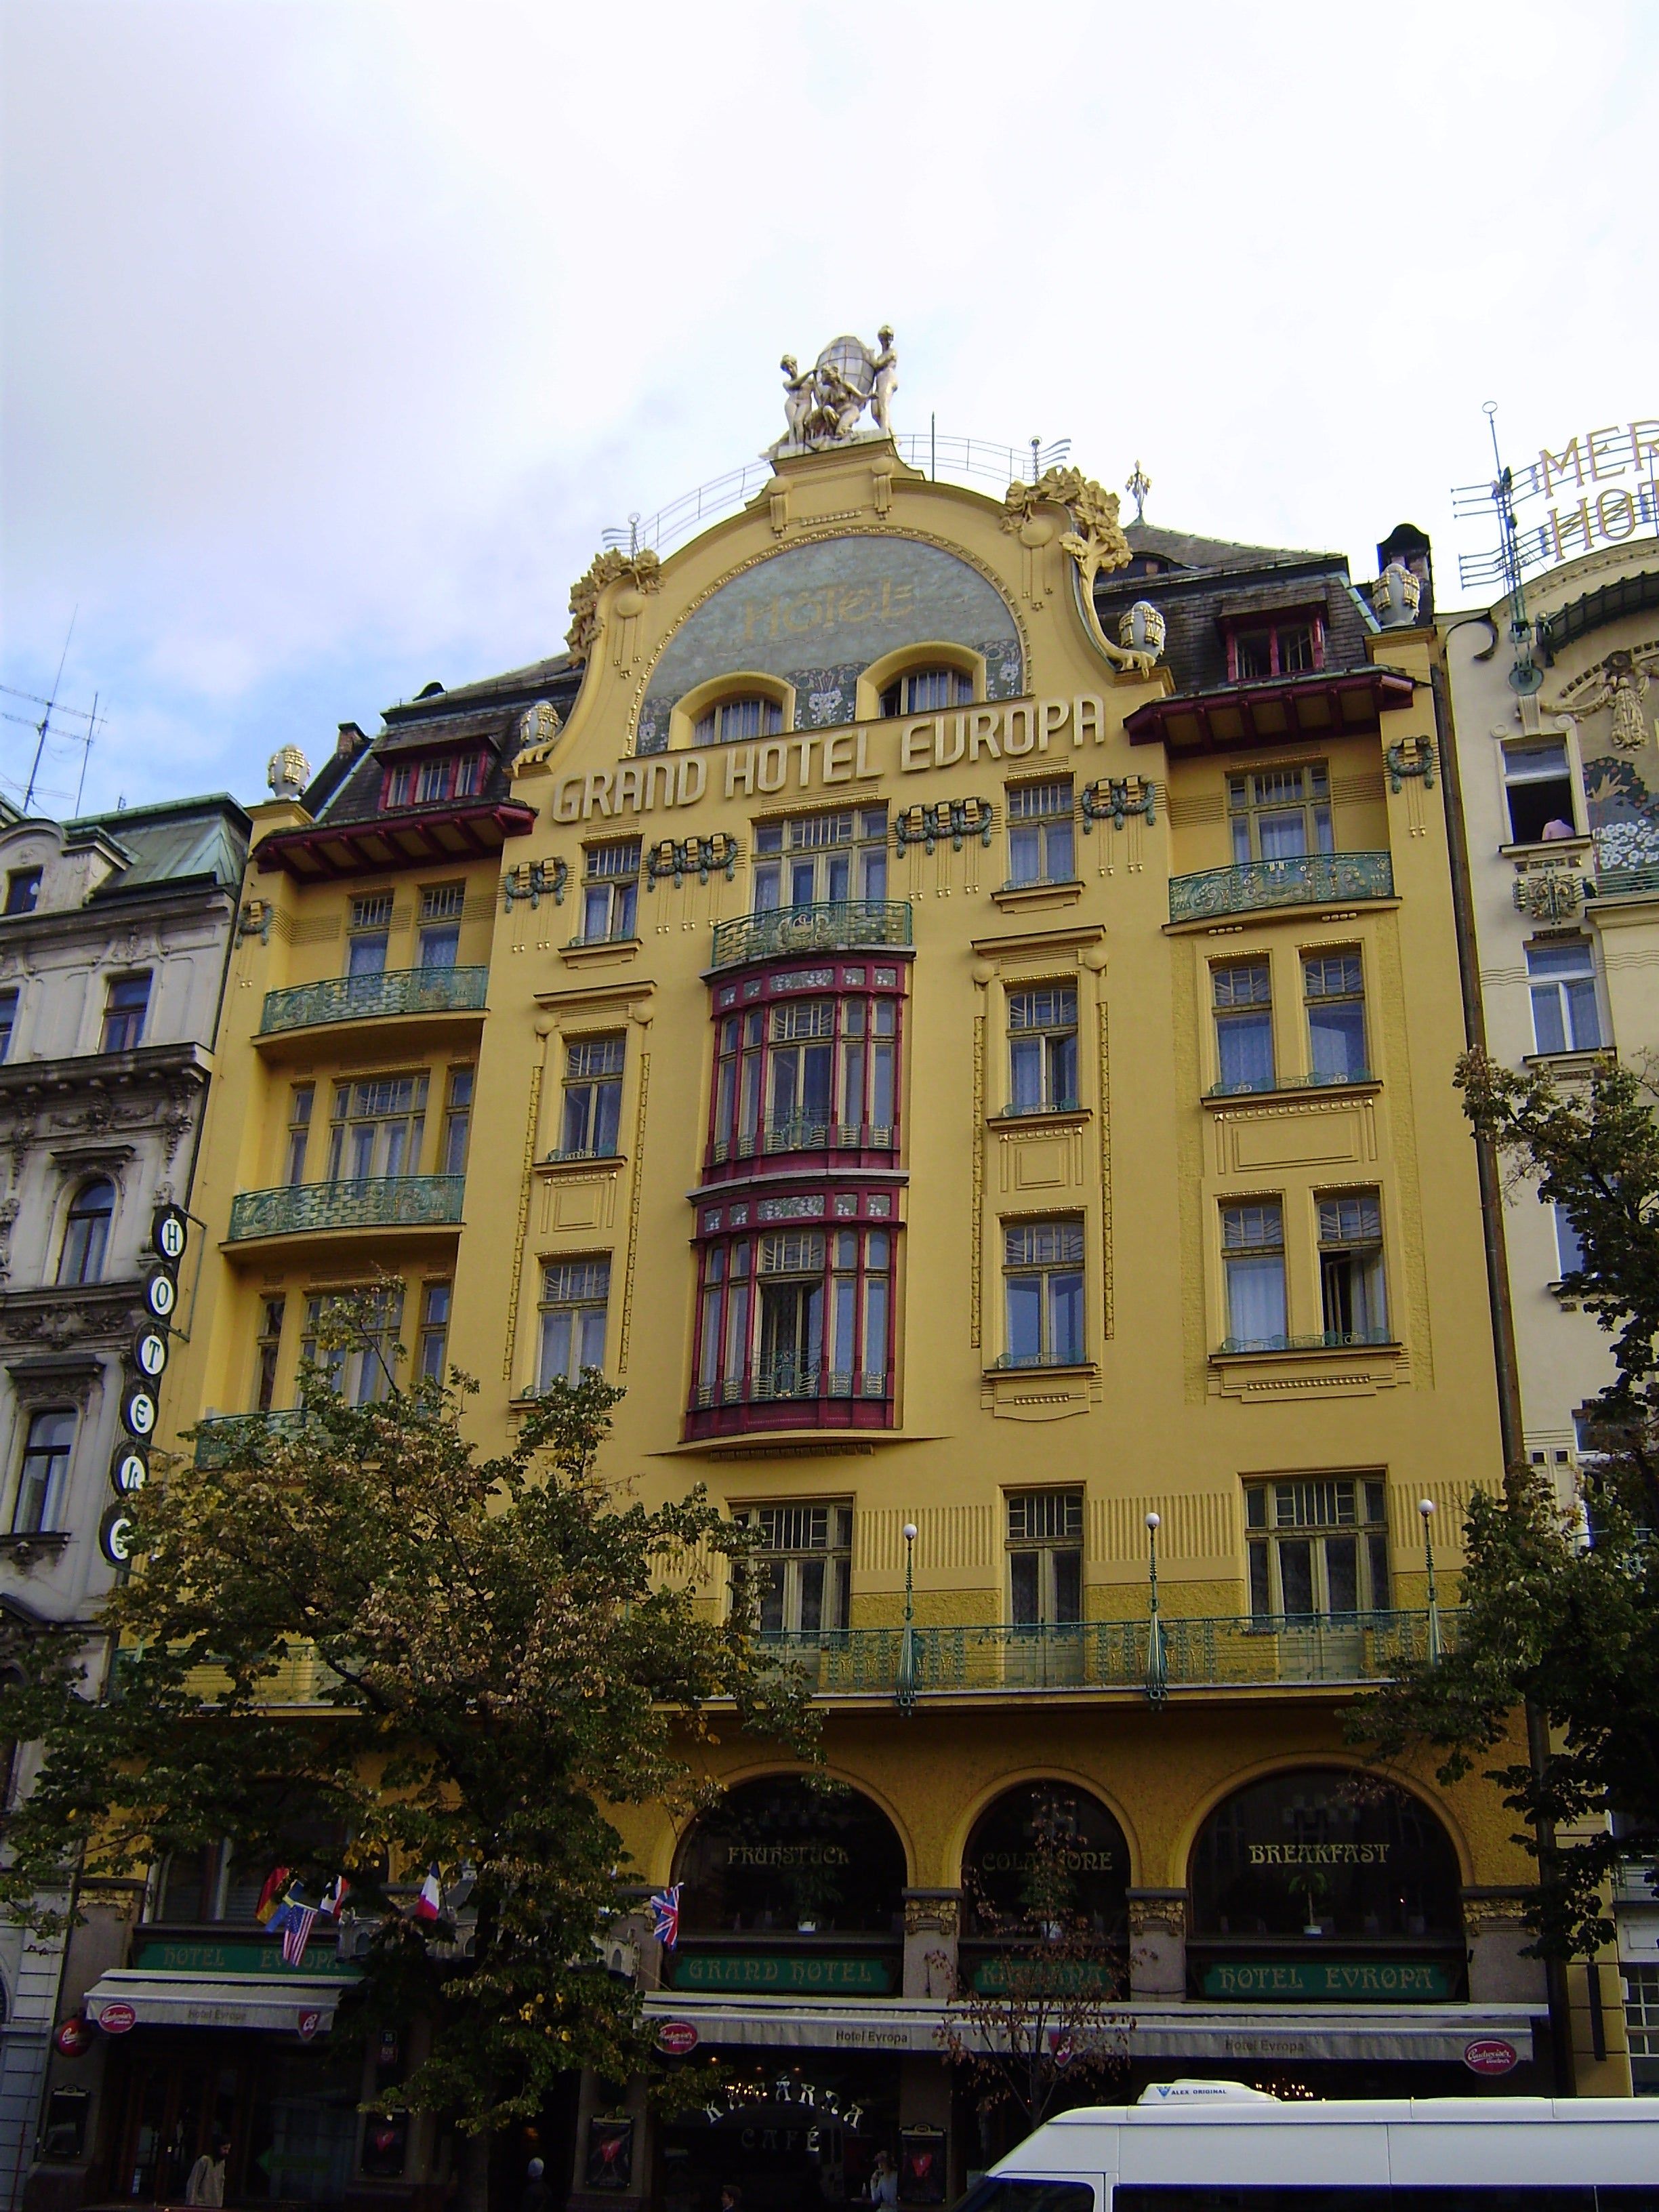 Grand Hotel Europa In Prague 2 Reviews And6 Photos And Deals Minube Net